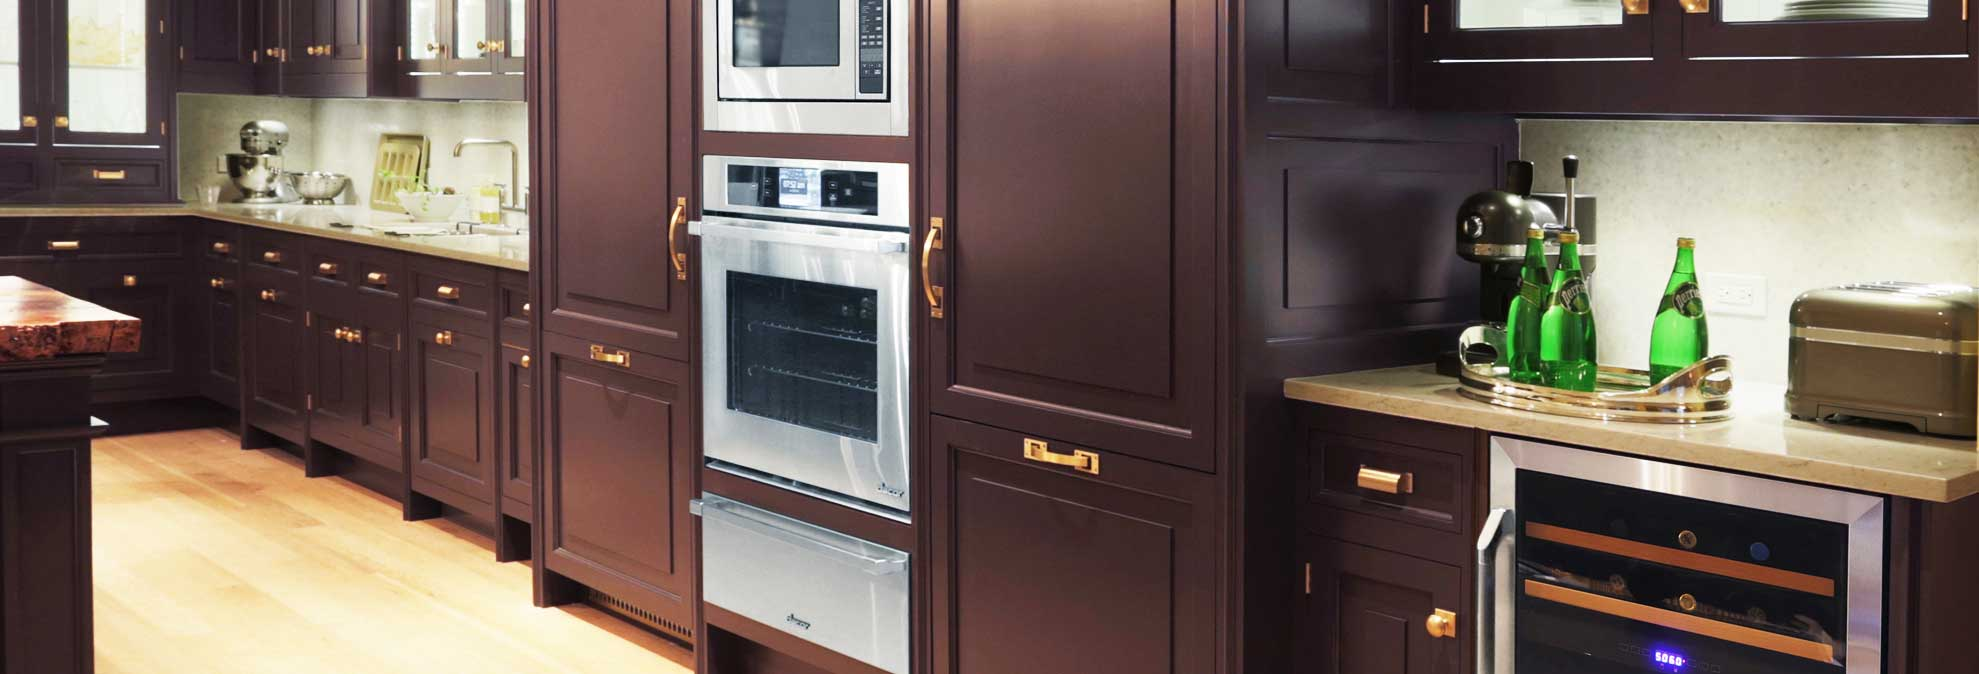 Best kitchen cabinet buying guide consumer reports for Purchase kitchen cabinets